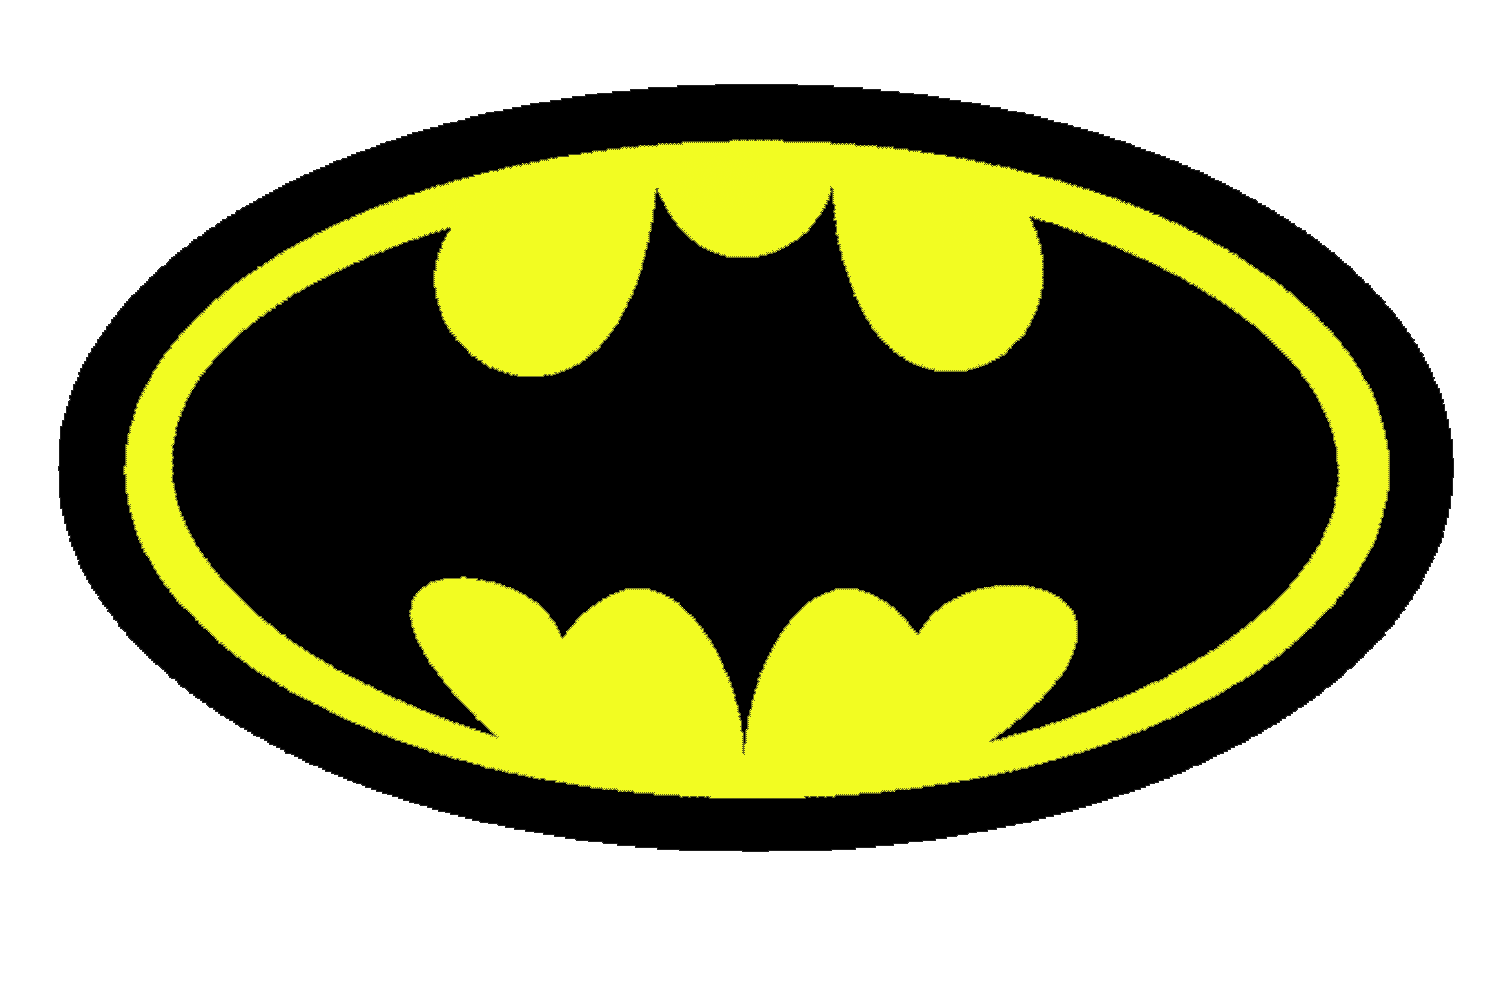 yellow, black, batman logo png #2033